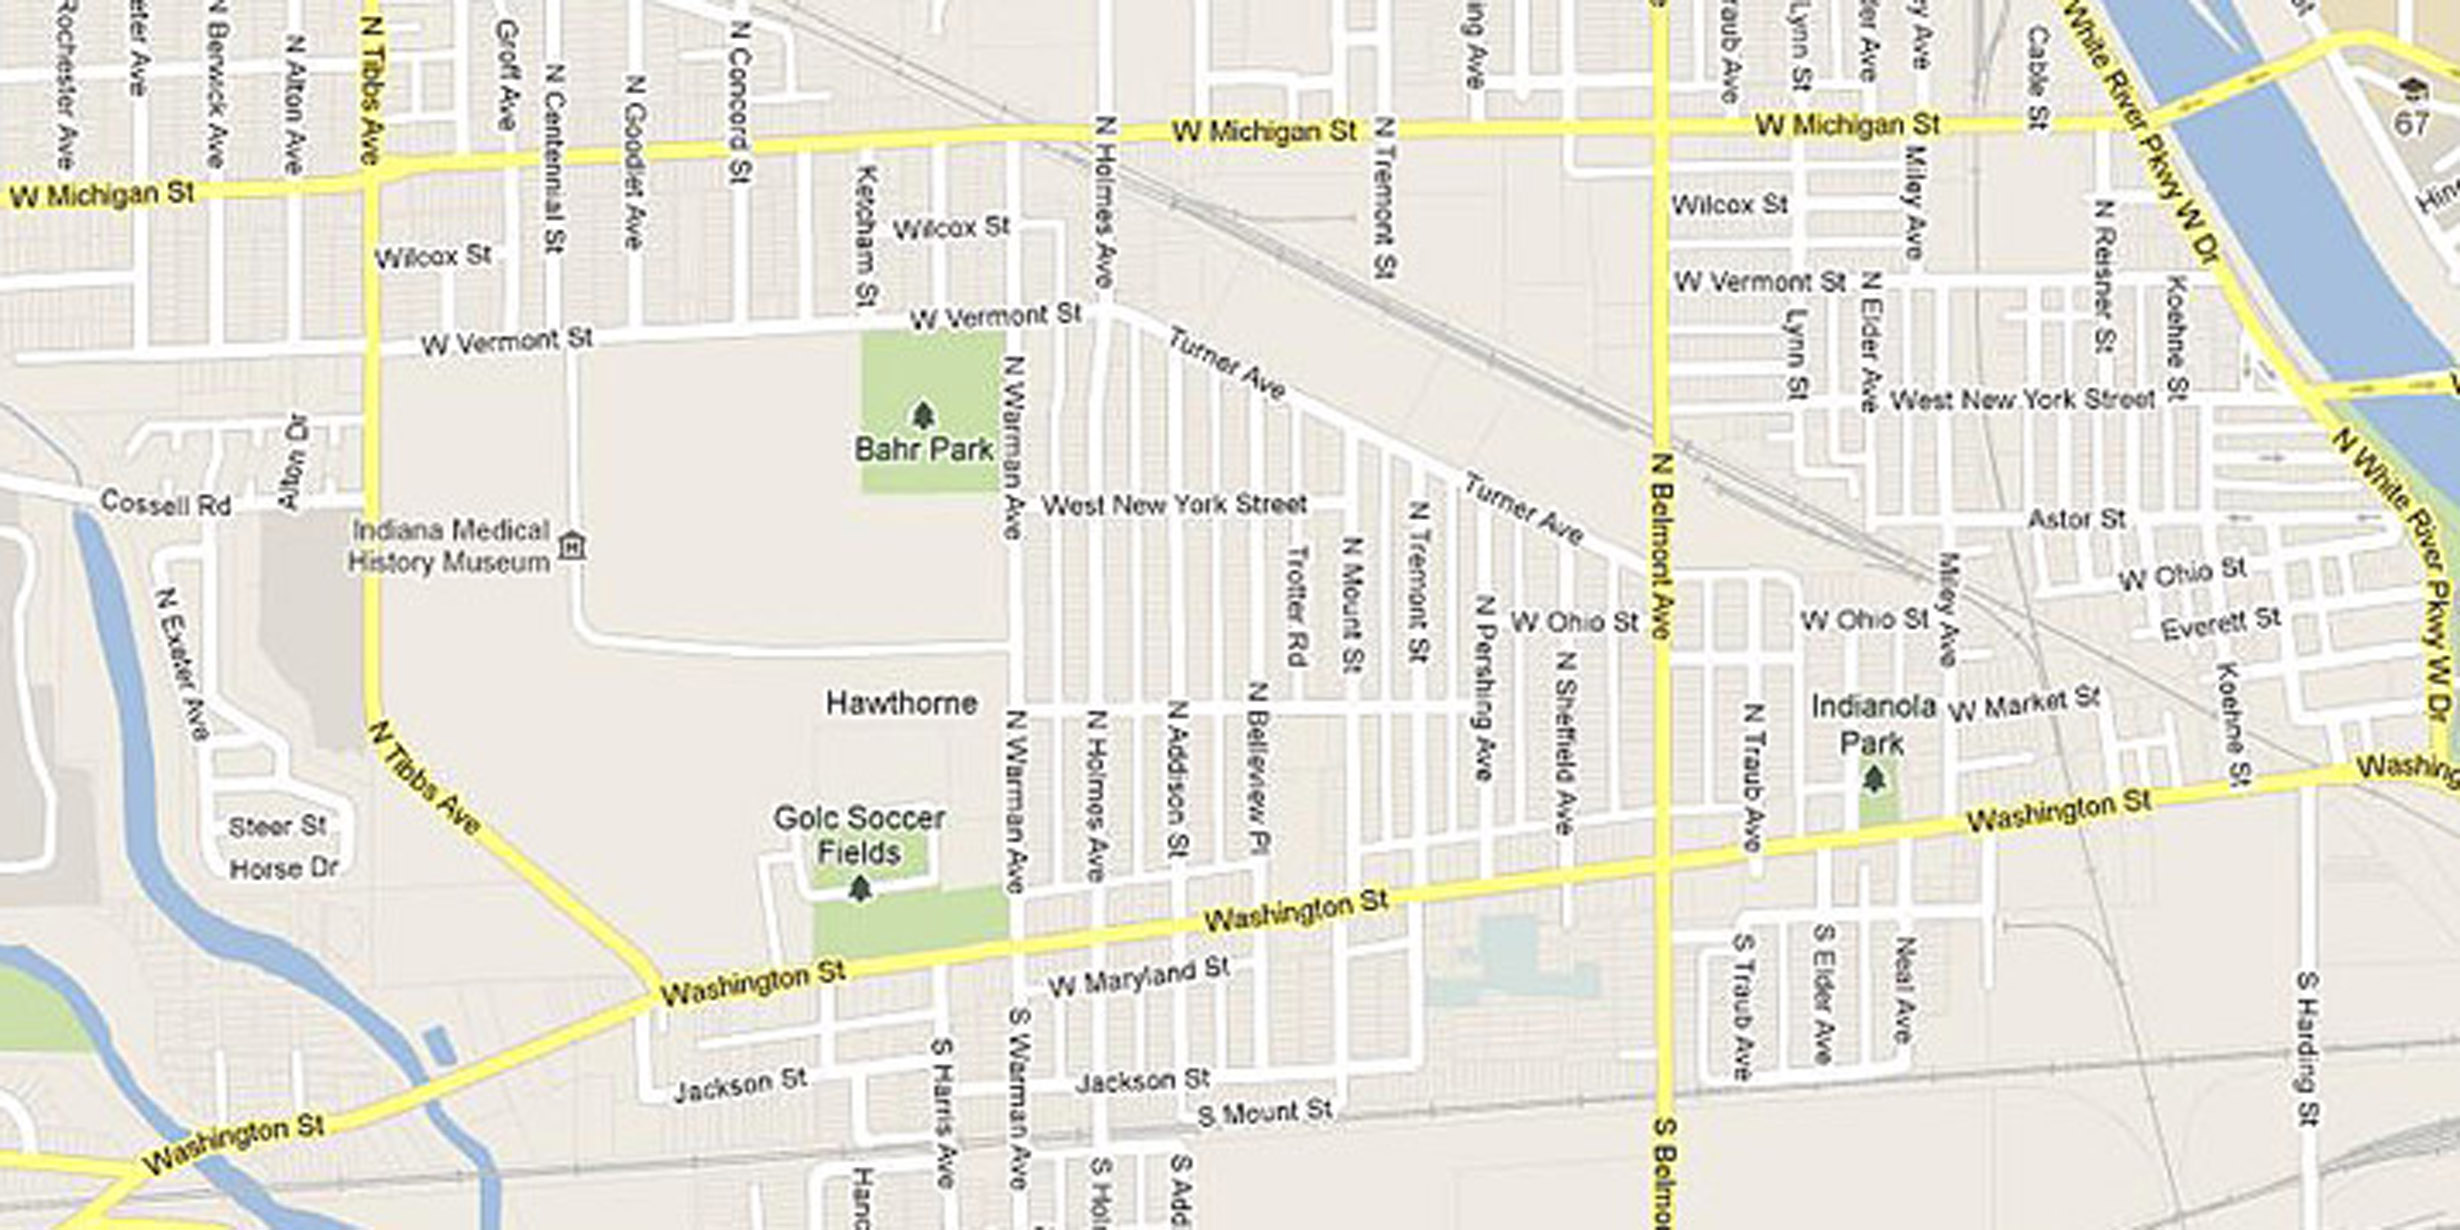 HI Mailbag: The Hawthorne Neighborhood - Historic ... on va hospital indianapolis map, central indianapolis map, new orleans central business district map, washington square mall indianapolis map, ball state university parking map, indianapolis in map, indianapolis township map, midtown indianapolis map, indianapolis state map, holiday park indianapolis map, restaurants indianapolis map, indianapolis cultural districts map, white river state park map, jw marriott indianapolis map, indianapolis street map, greenwood indianapolis map, indiana map, mass ave indianapolis map, indianapolis zip code map, north indianapolis map,